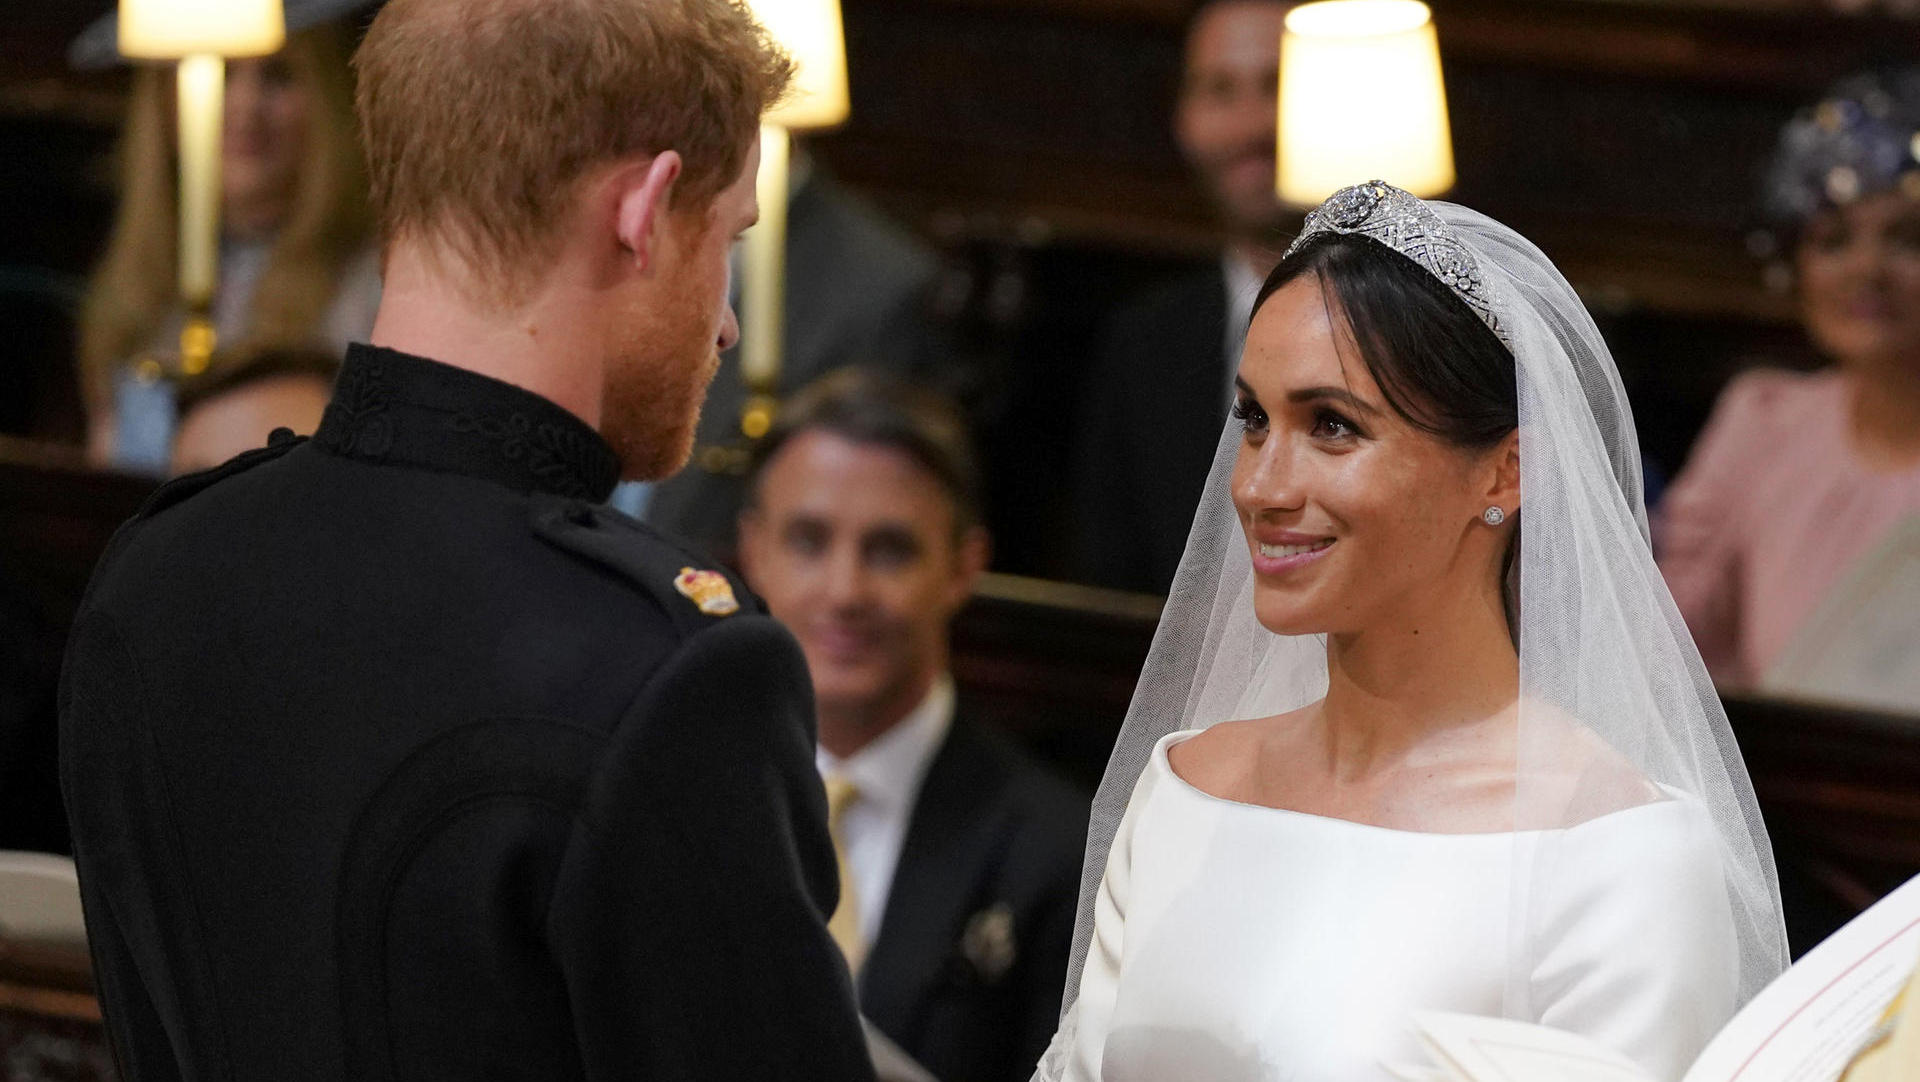 Queen Elizabeth Hochzeit Duchess Meghan Differs From Her Wedding Dress